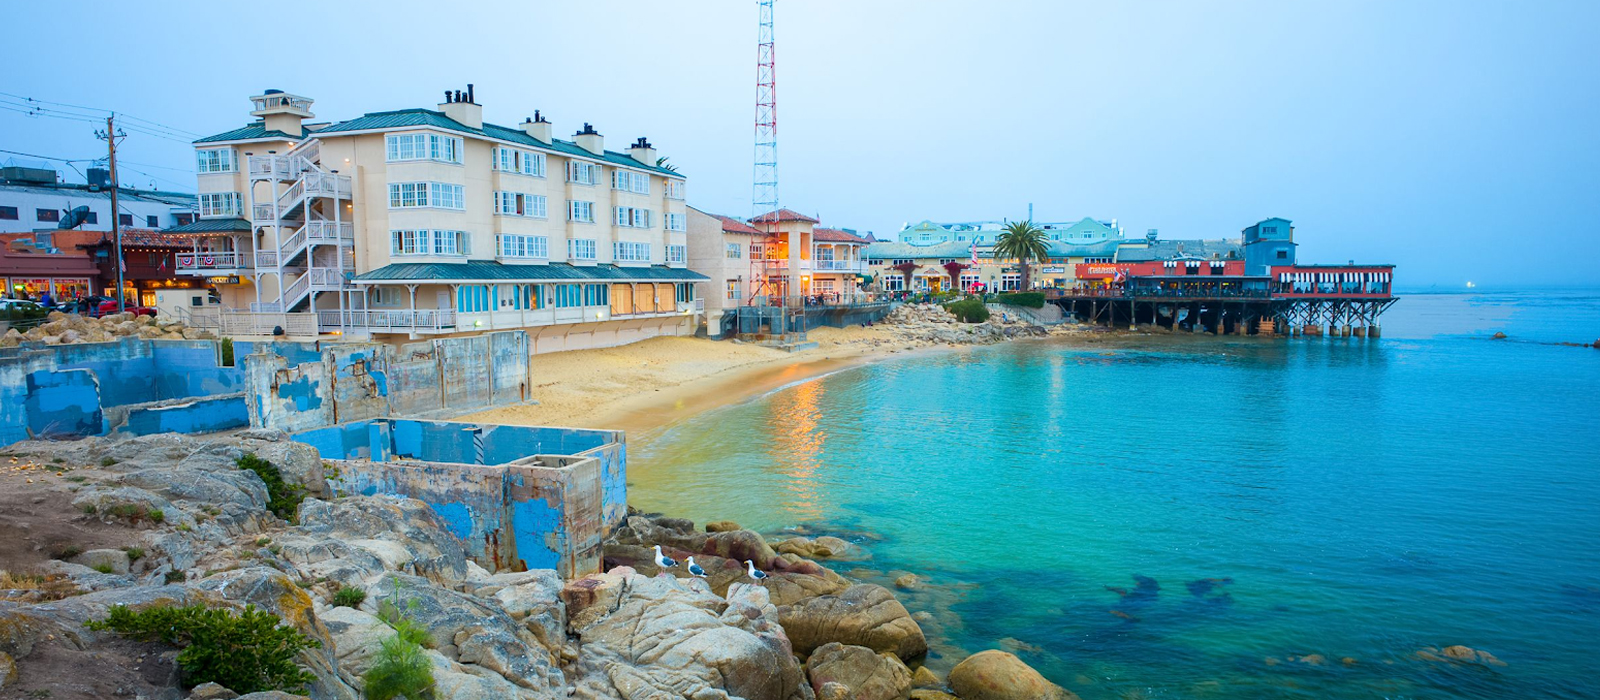 NESTLED JUST MINUTES FROM THE MONTEREY BAY AQUARIUM AND CANNERY ROW